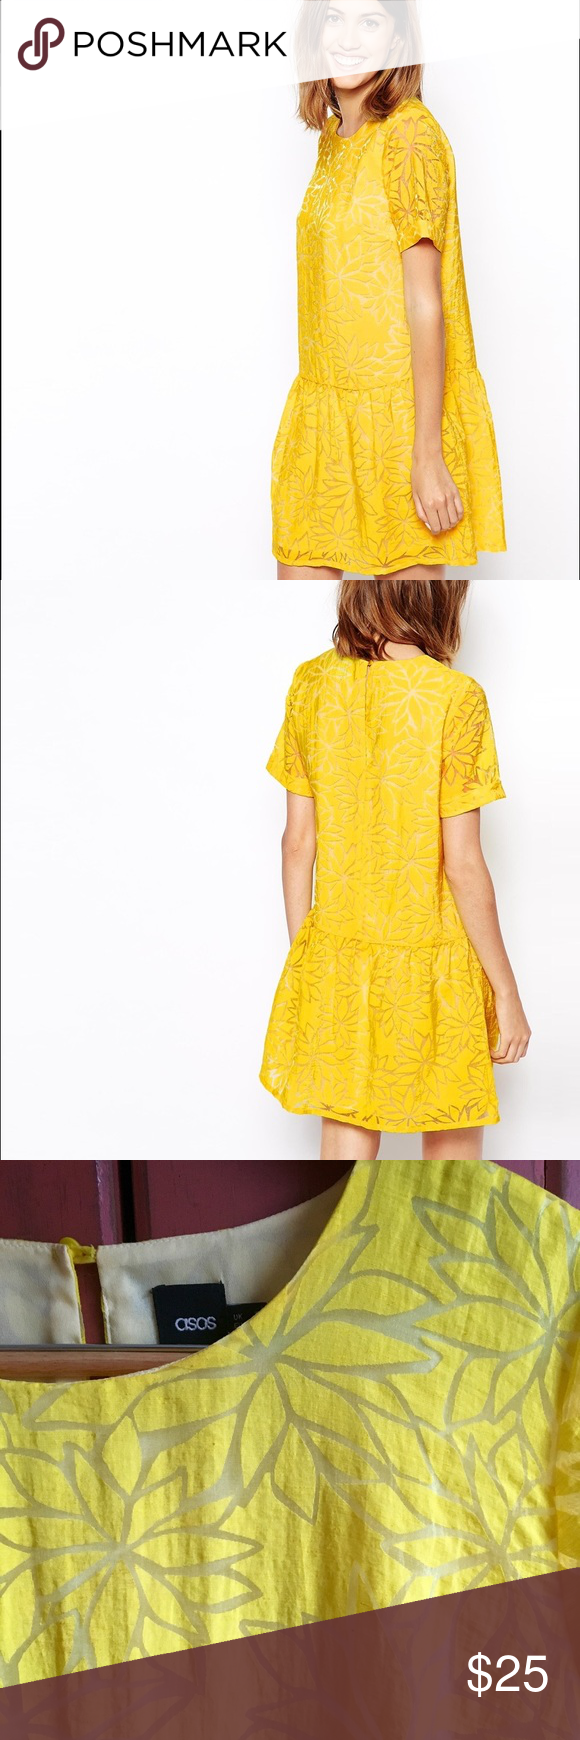 Like new ASOS yellow floral drop waist dress sz 12 This stunning bright yellow floral dress from ASOS is amazing! It features a drop waist and a yellow floral burnout pattern. The dress has been worn only once, and will arrive freshly laundered. ☀️ My pictures don't do the color justice, it is much more true to the model pictures. It's stunning, don't miss this dress! ASOS Dresses Midi